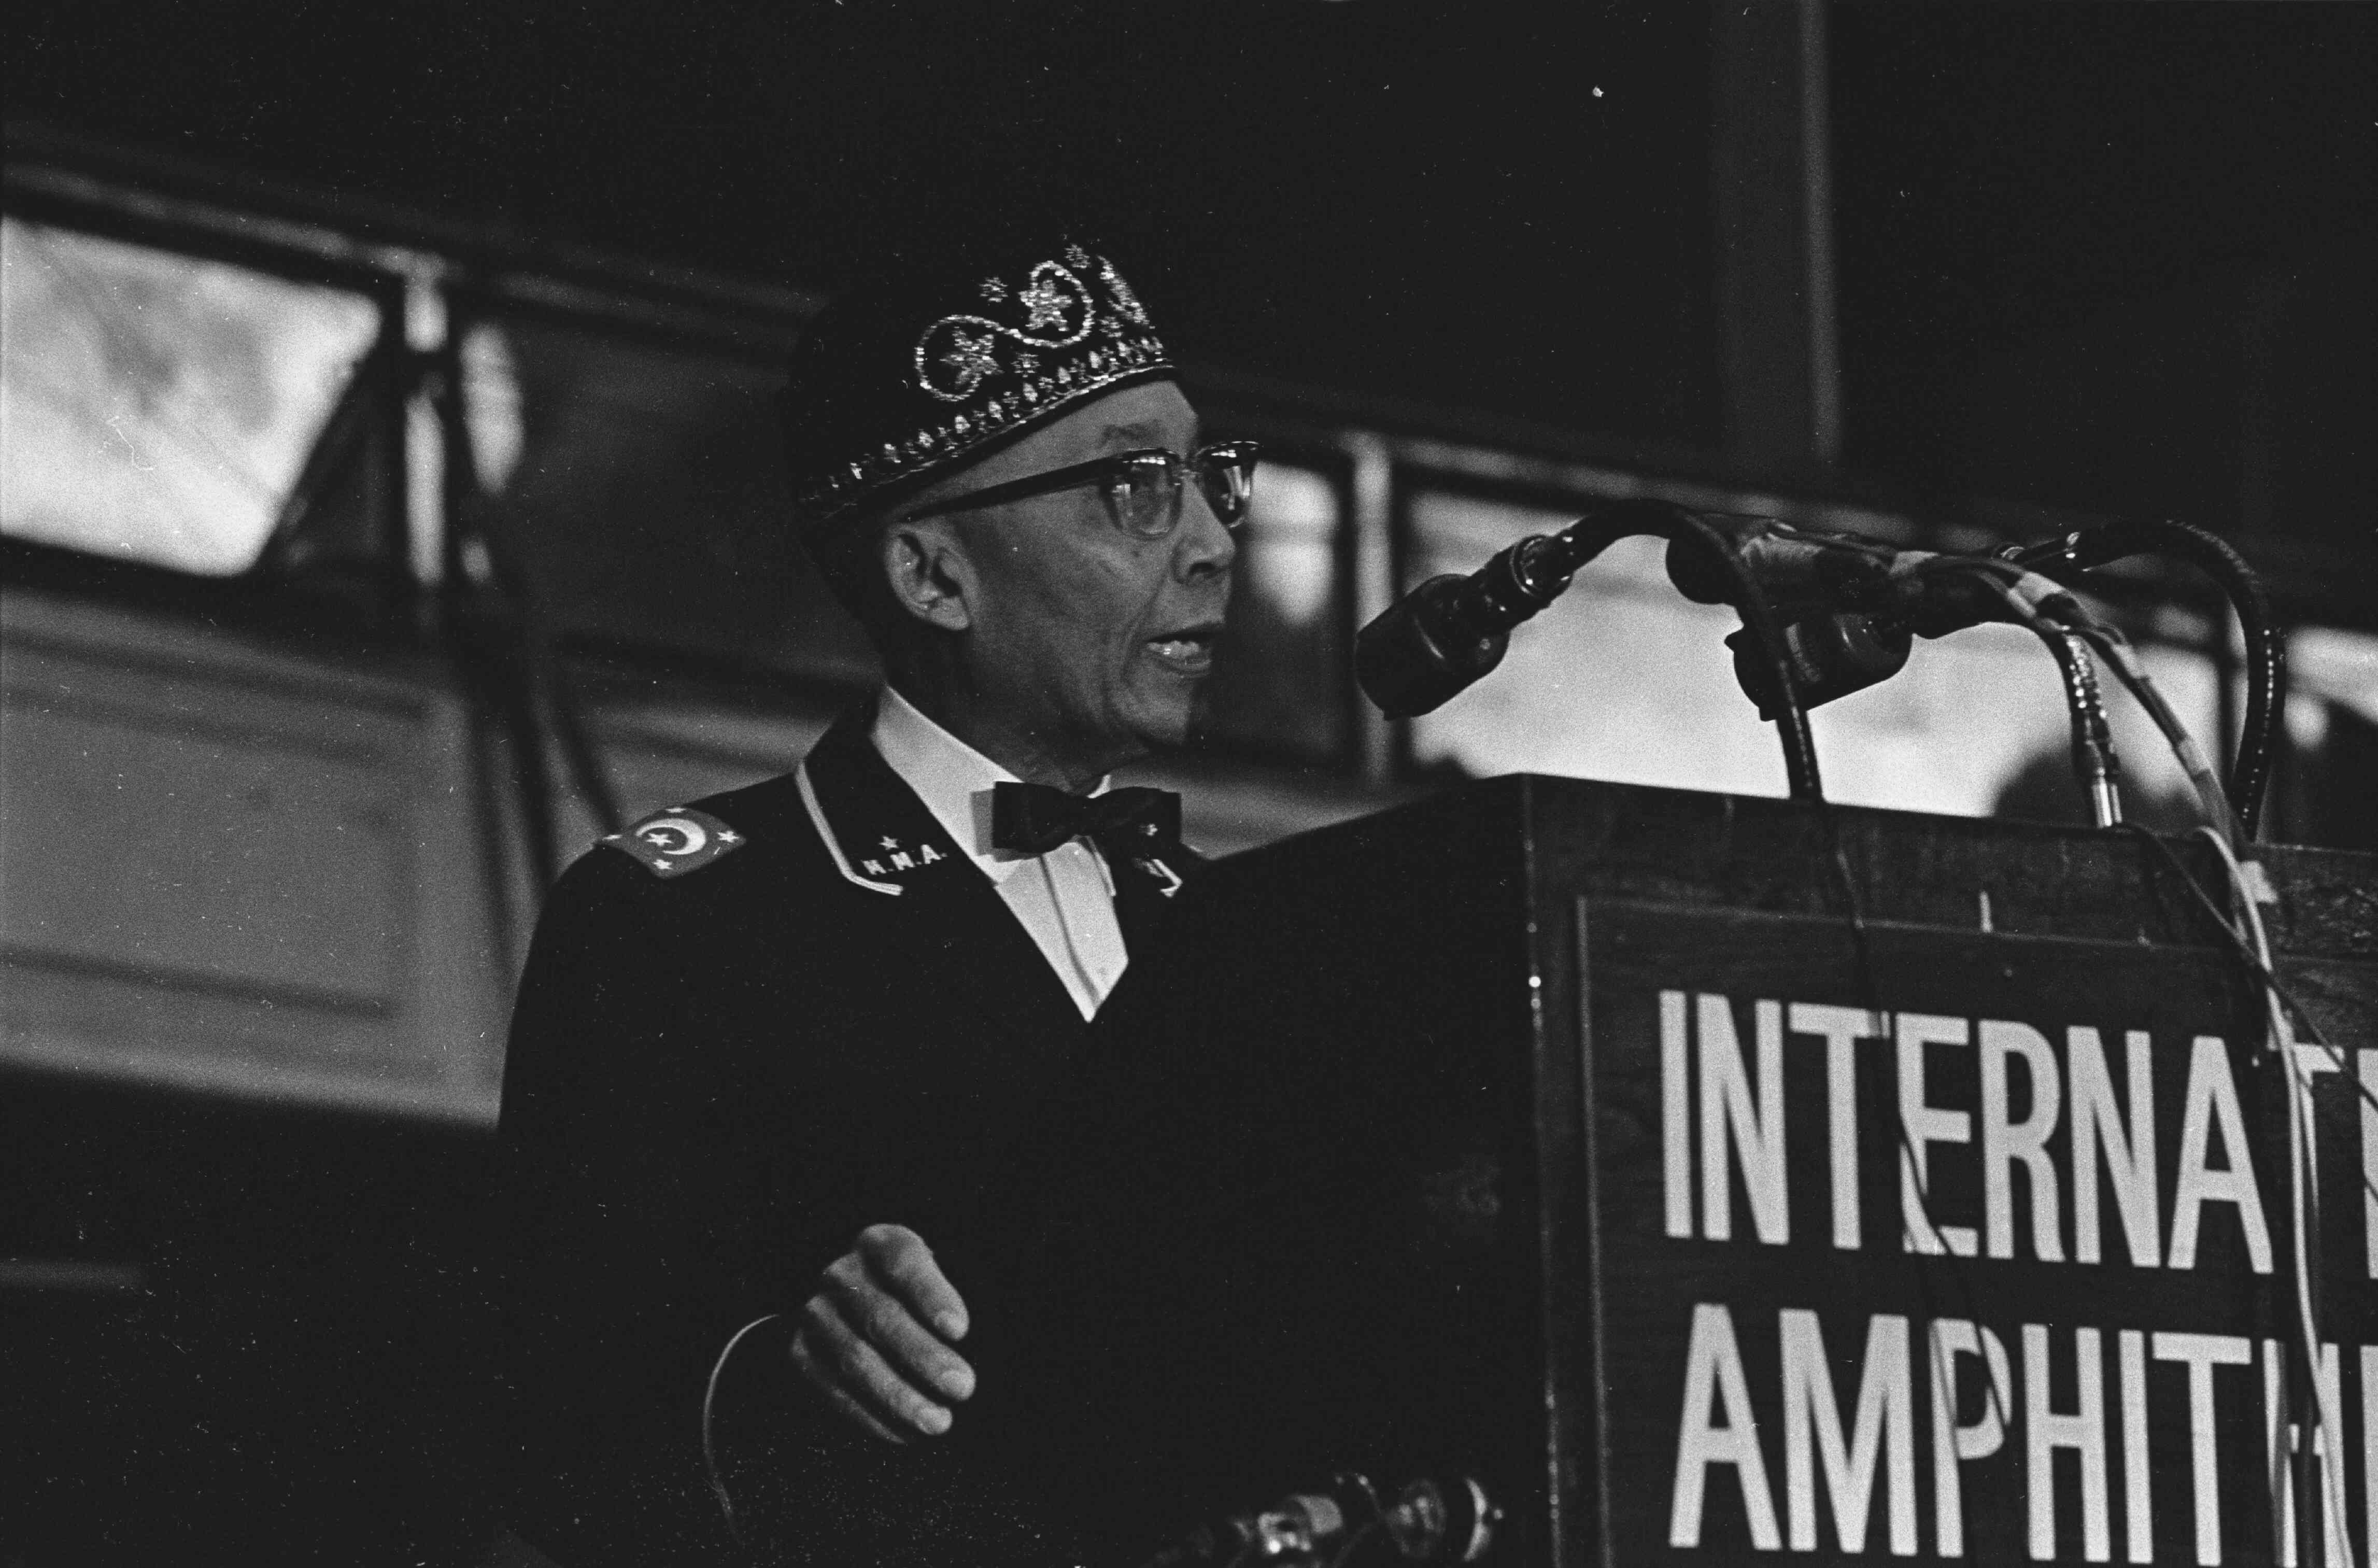 Elijah Muhammad standing at a podium and speaking into a microphone